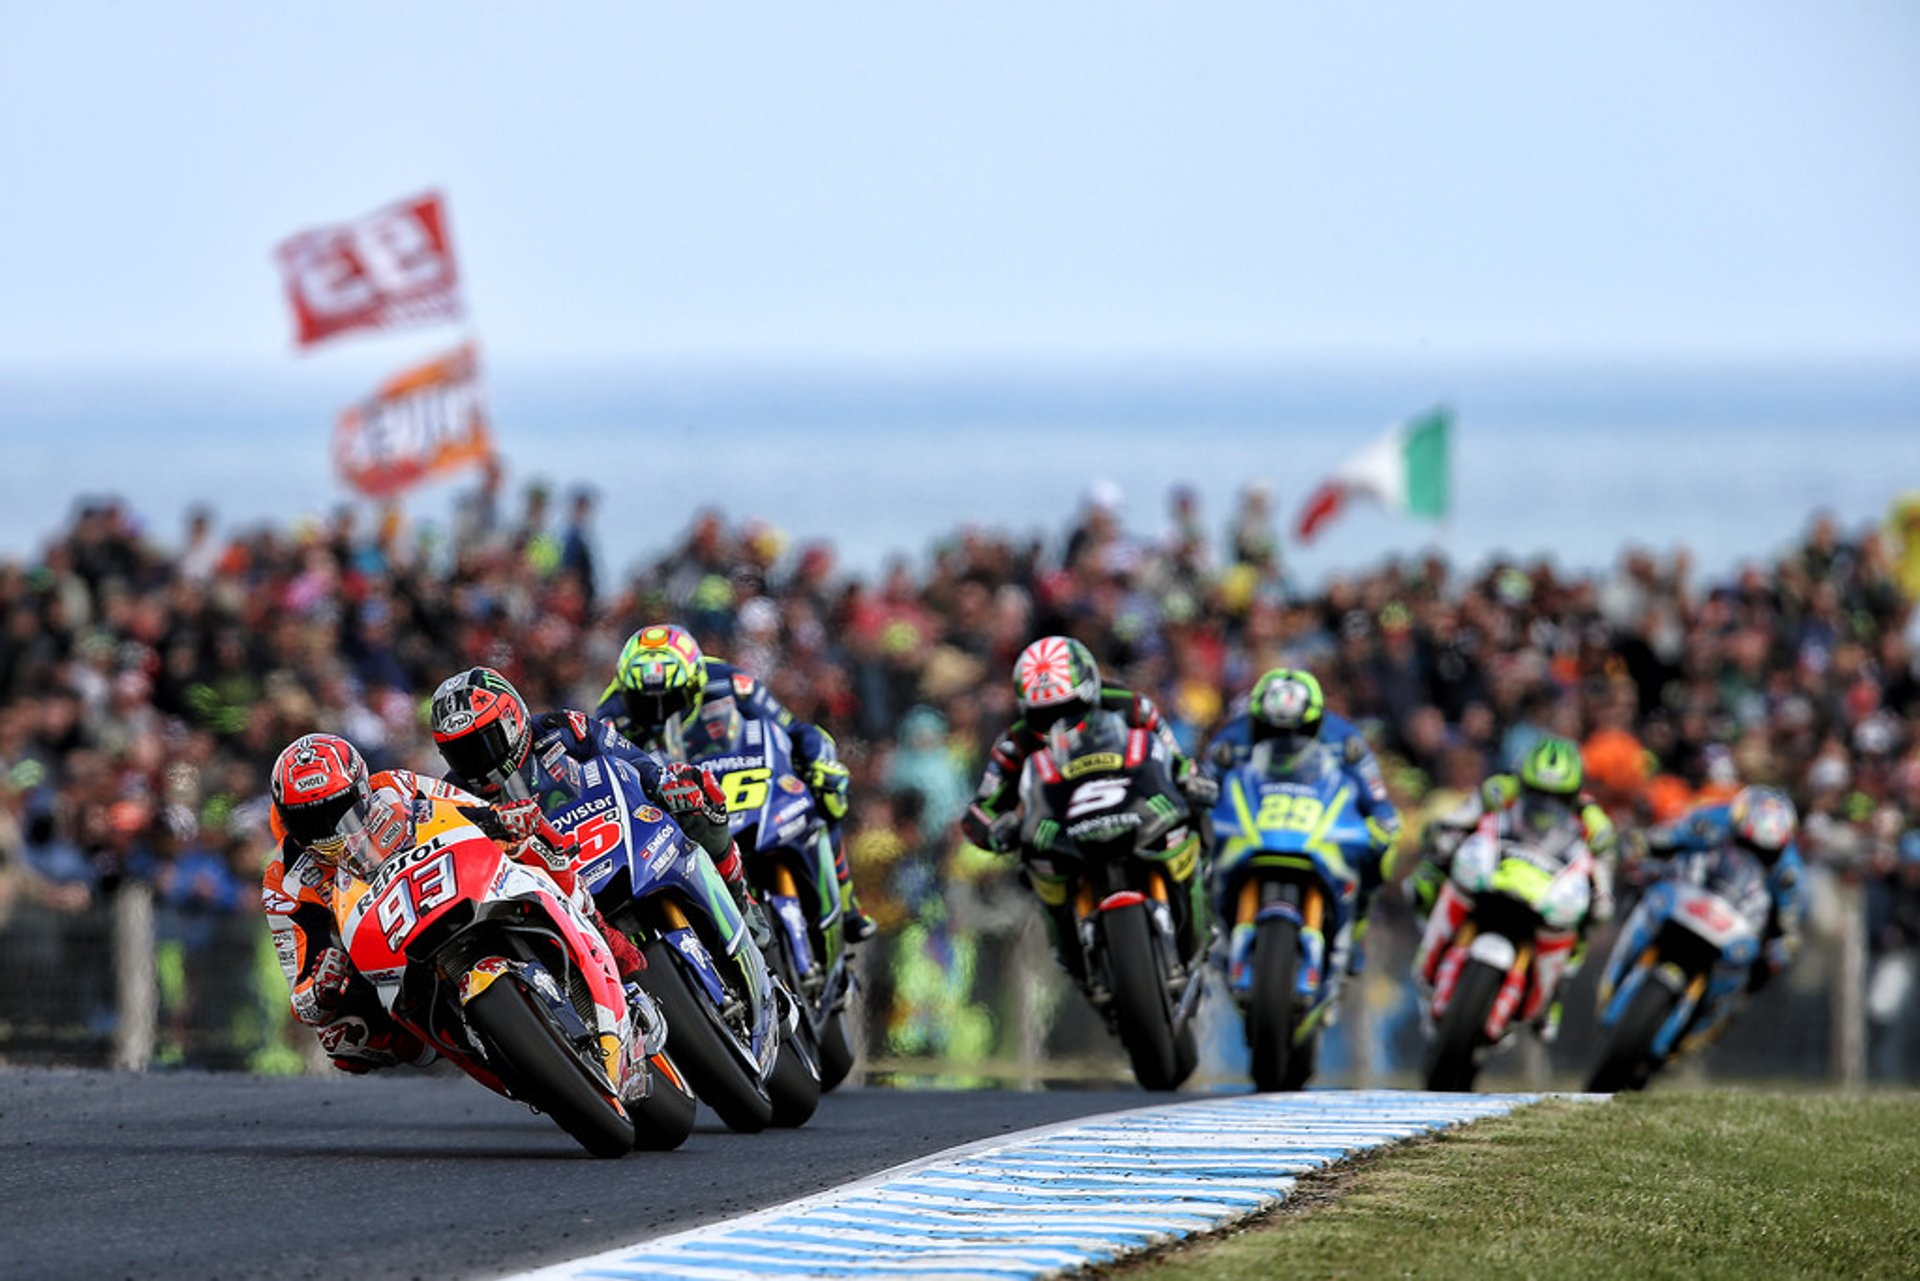 Best time for Australian Motorcycle Grand Prix in Victoria 2019